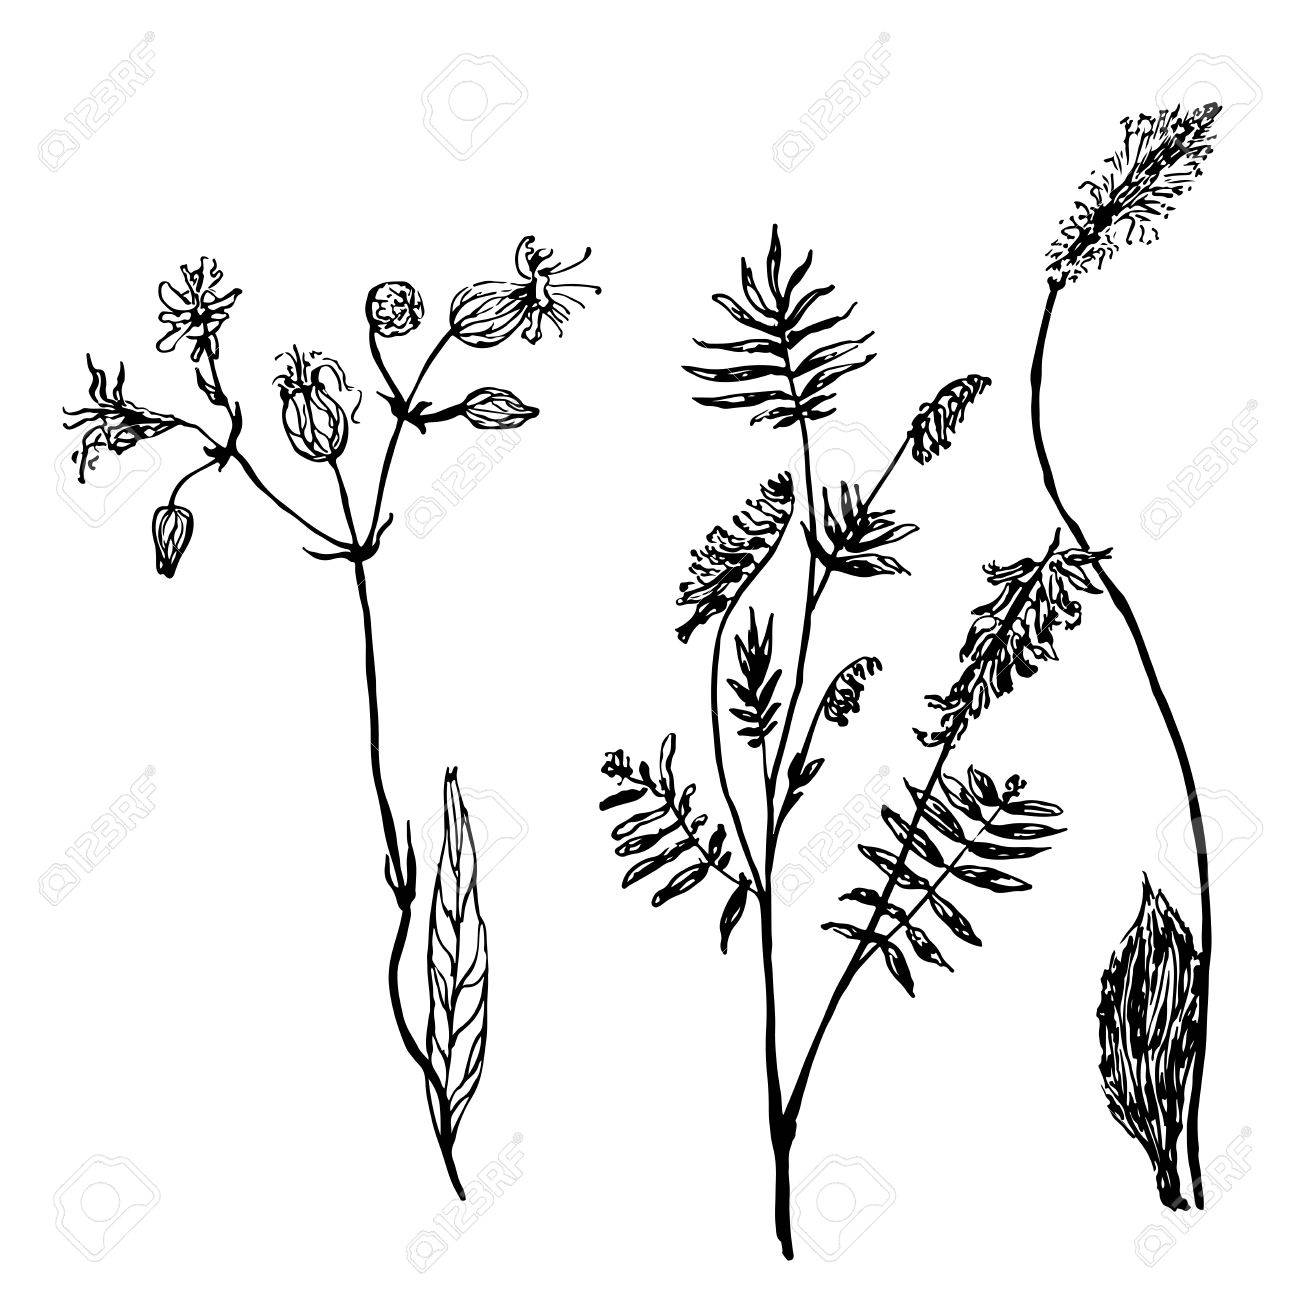 1300x1300 Set Of Isolated Drawings Meadow Grass Sketch Vector Illustration